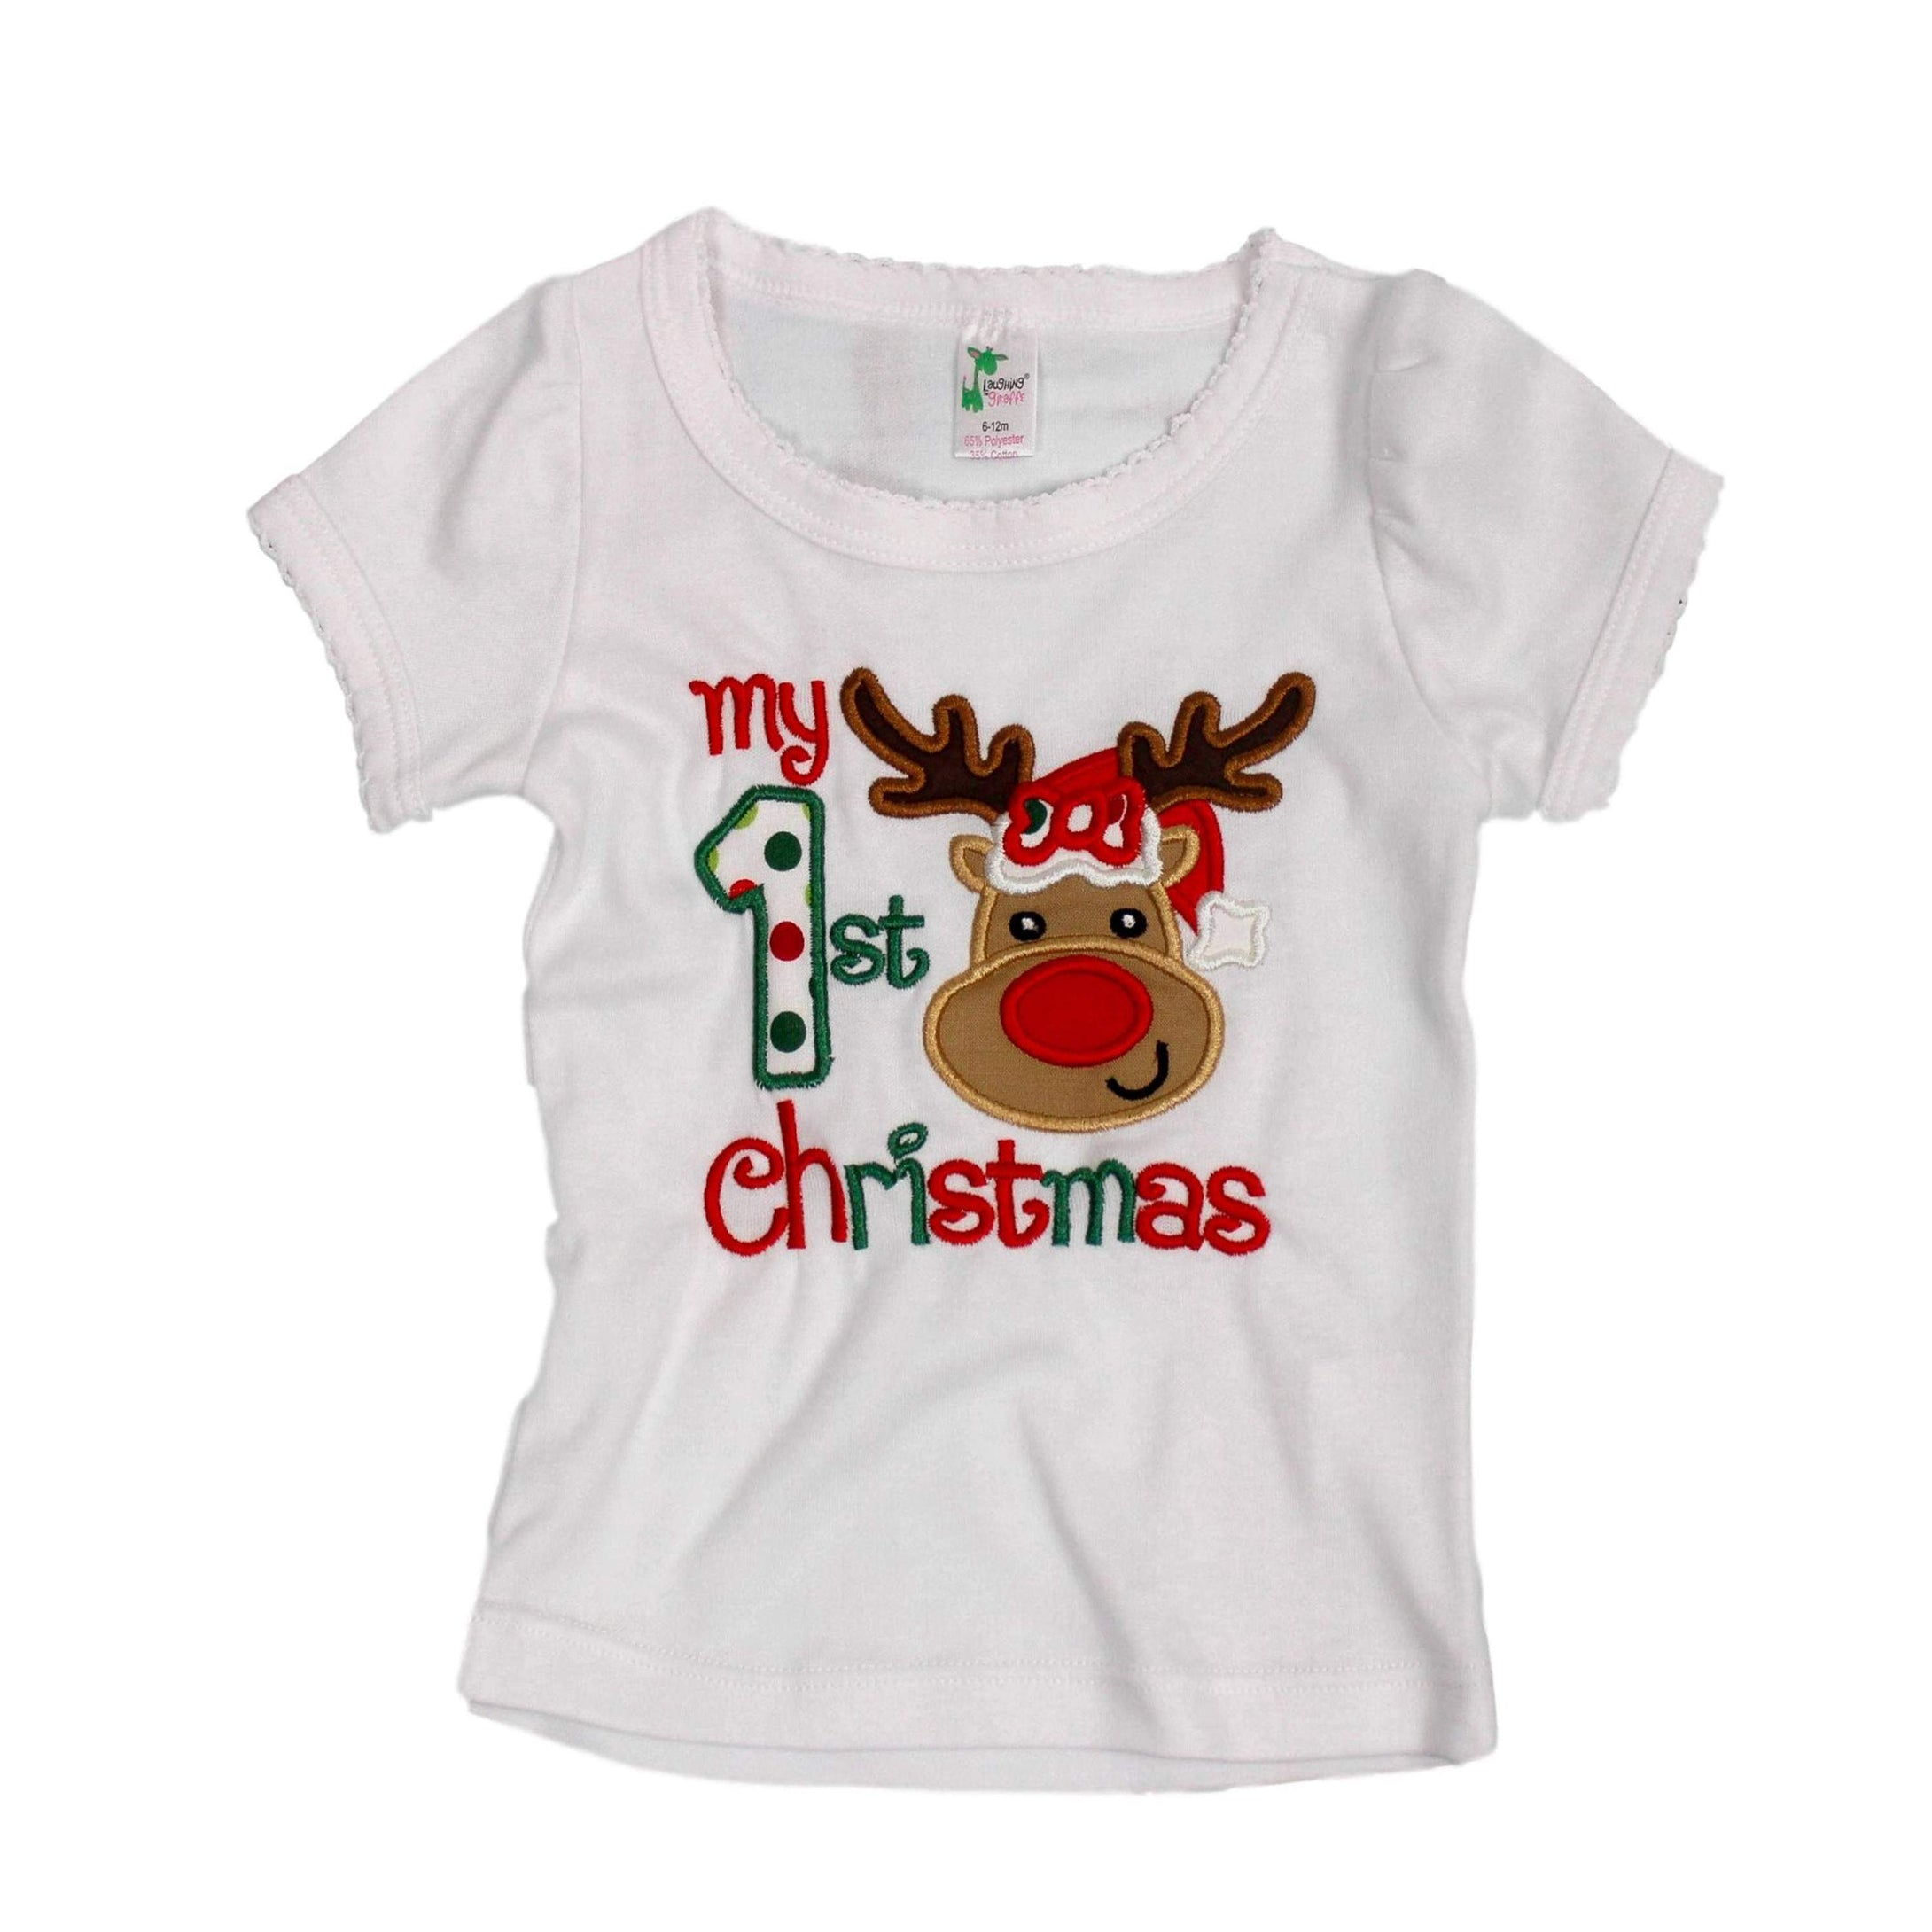 Toddler First Christmas shirt Reindeer First Christmas shirt Christmas baby shirt 1st Christmas shirt